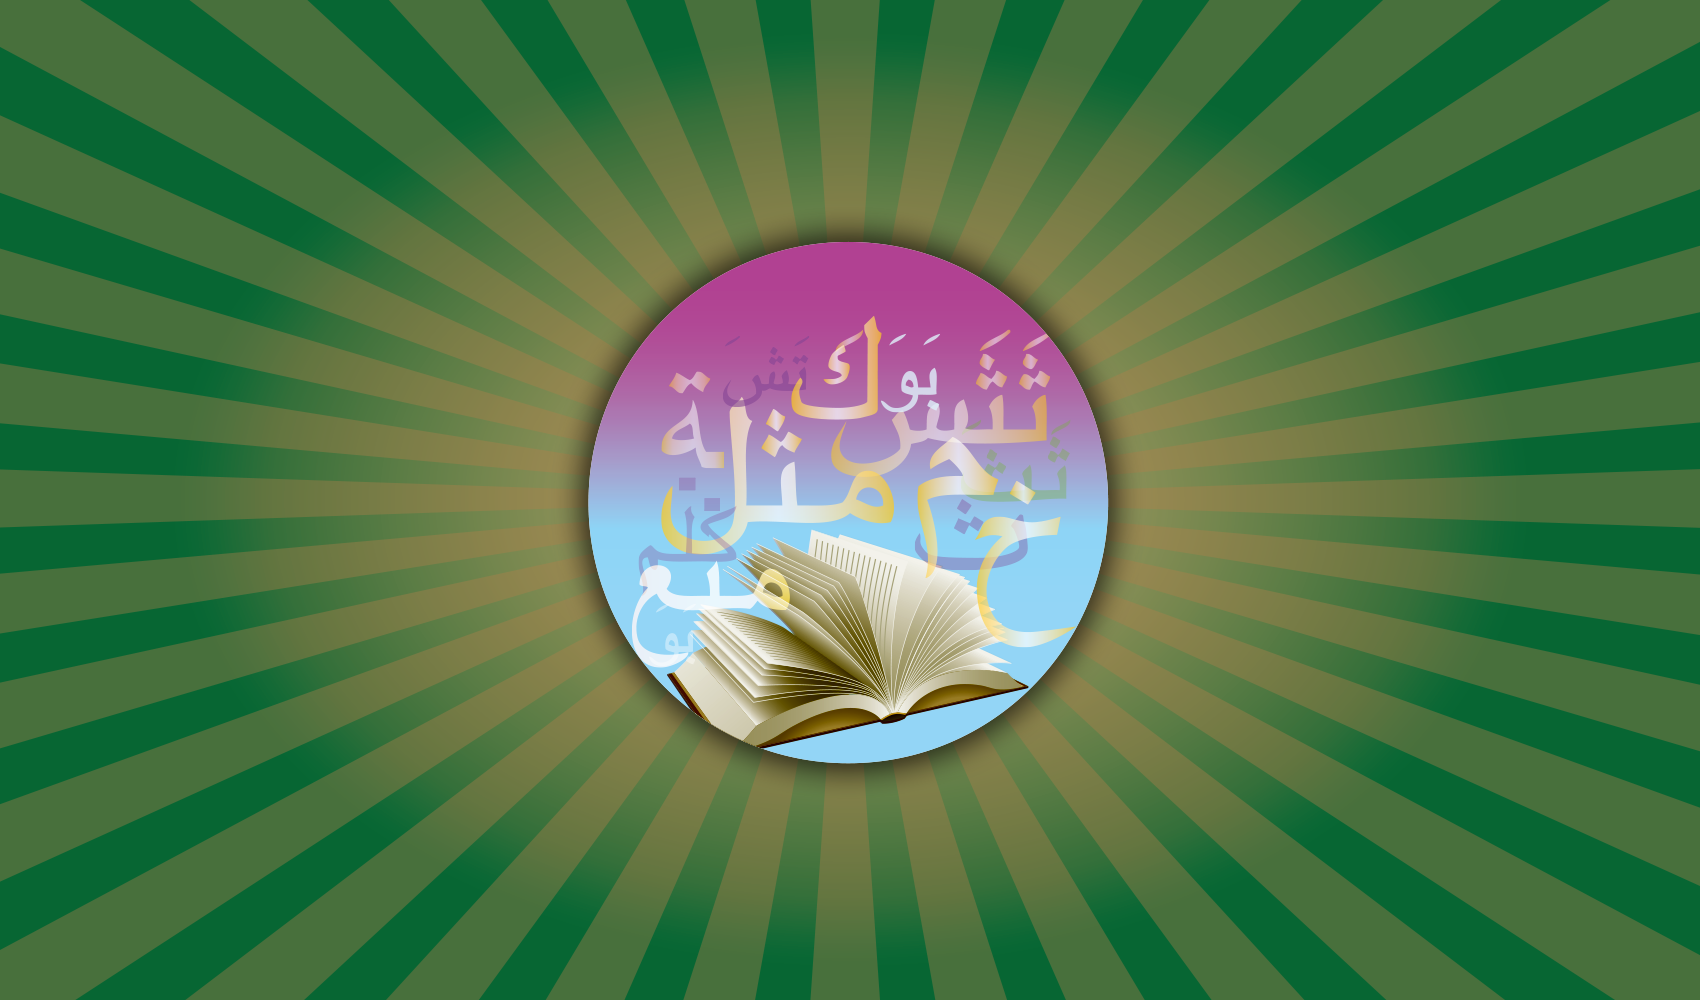 Qur'an Recitation Publications